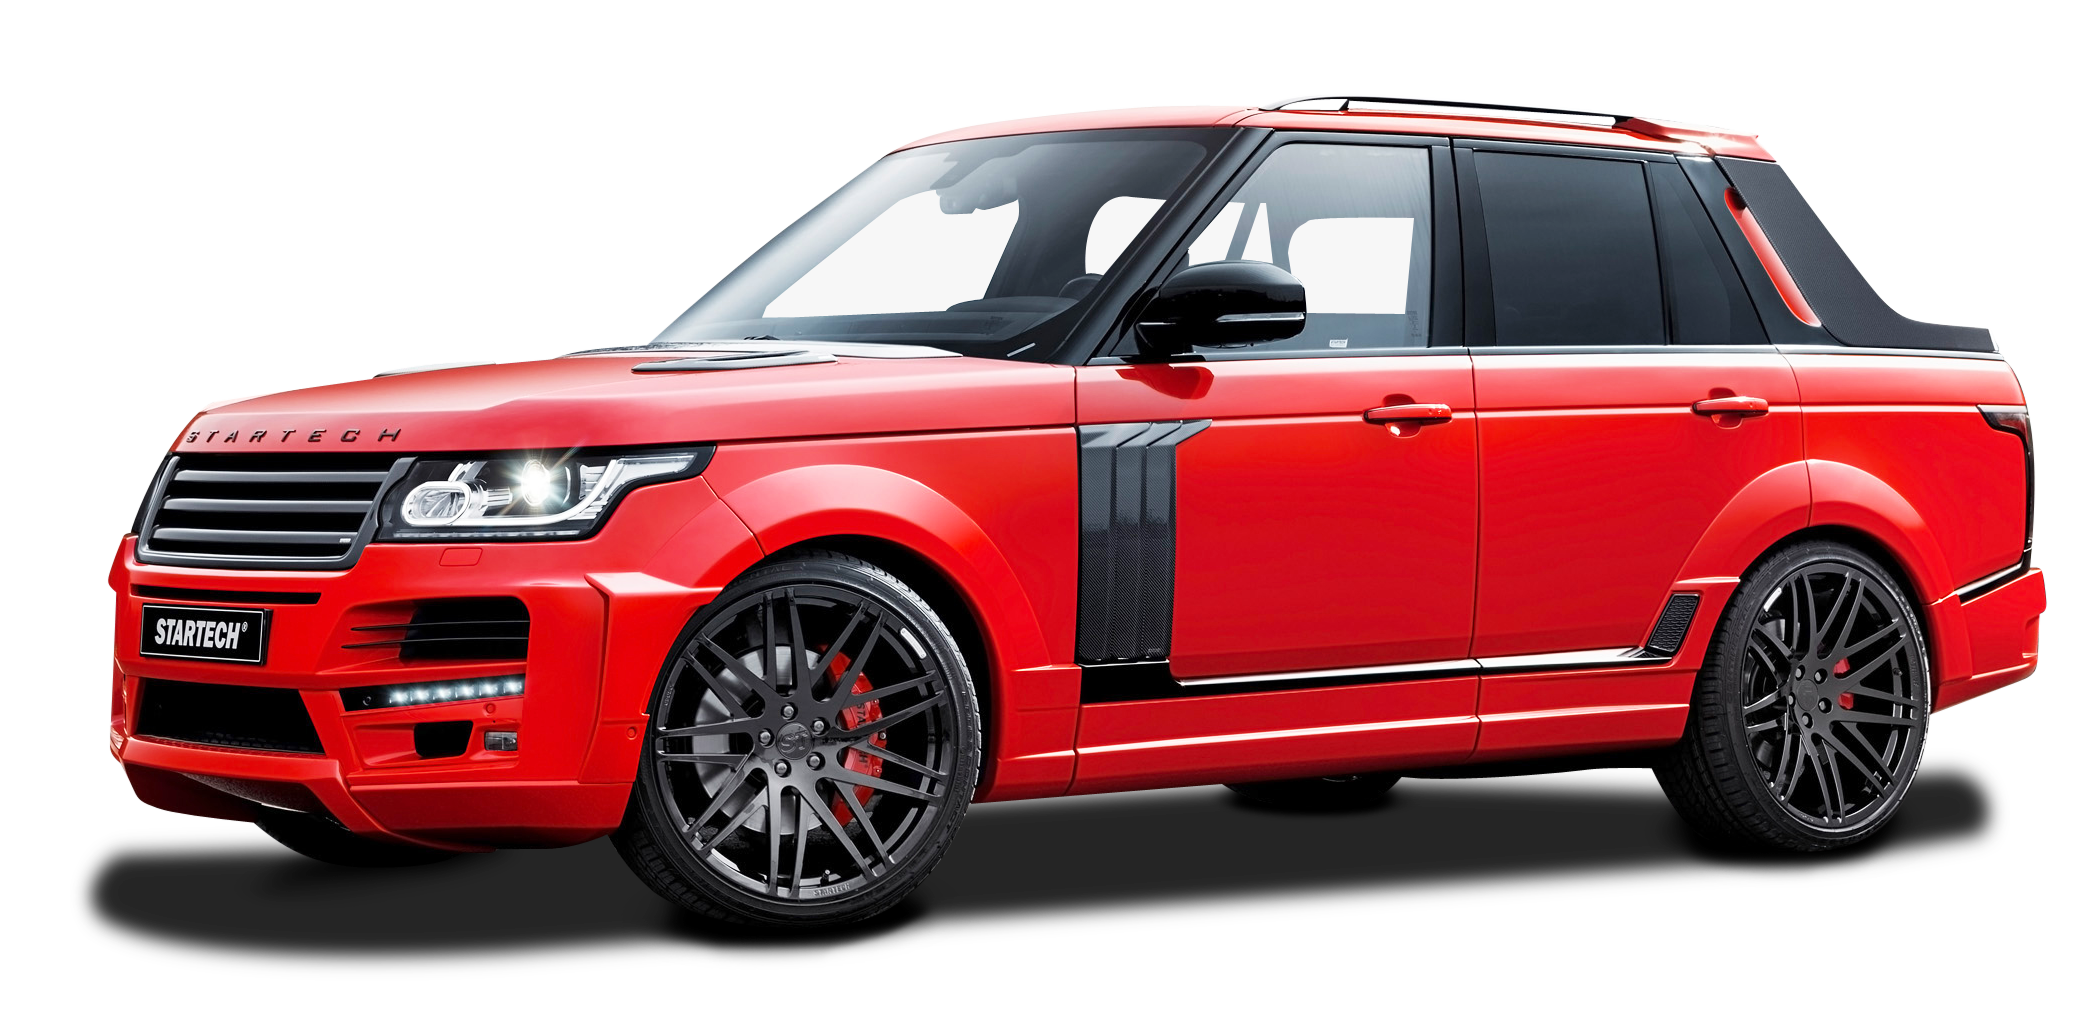 Startech Range Rover Pickup Red Truck